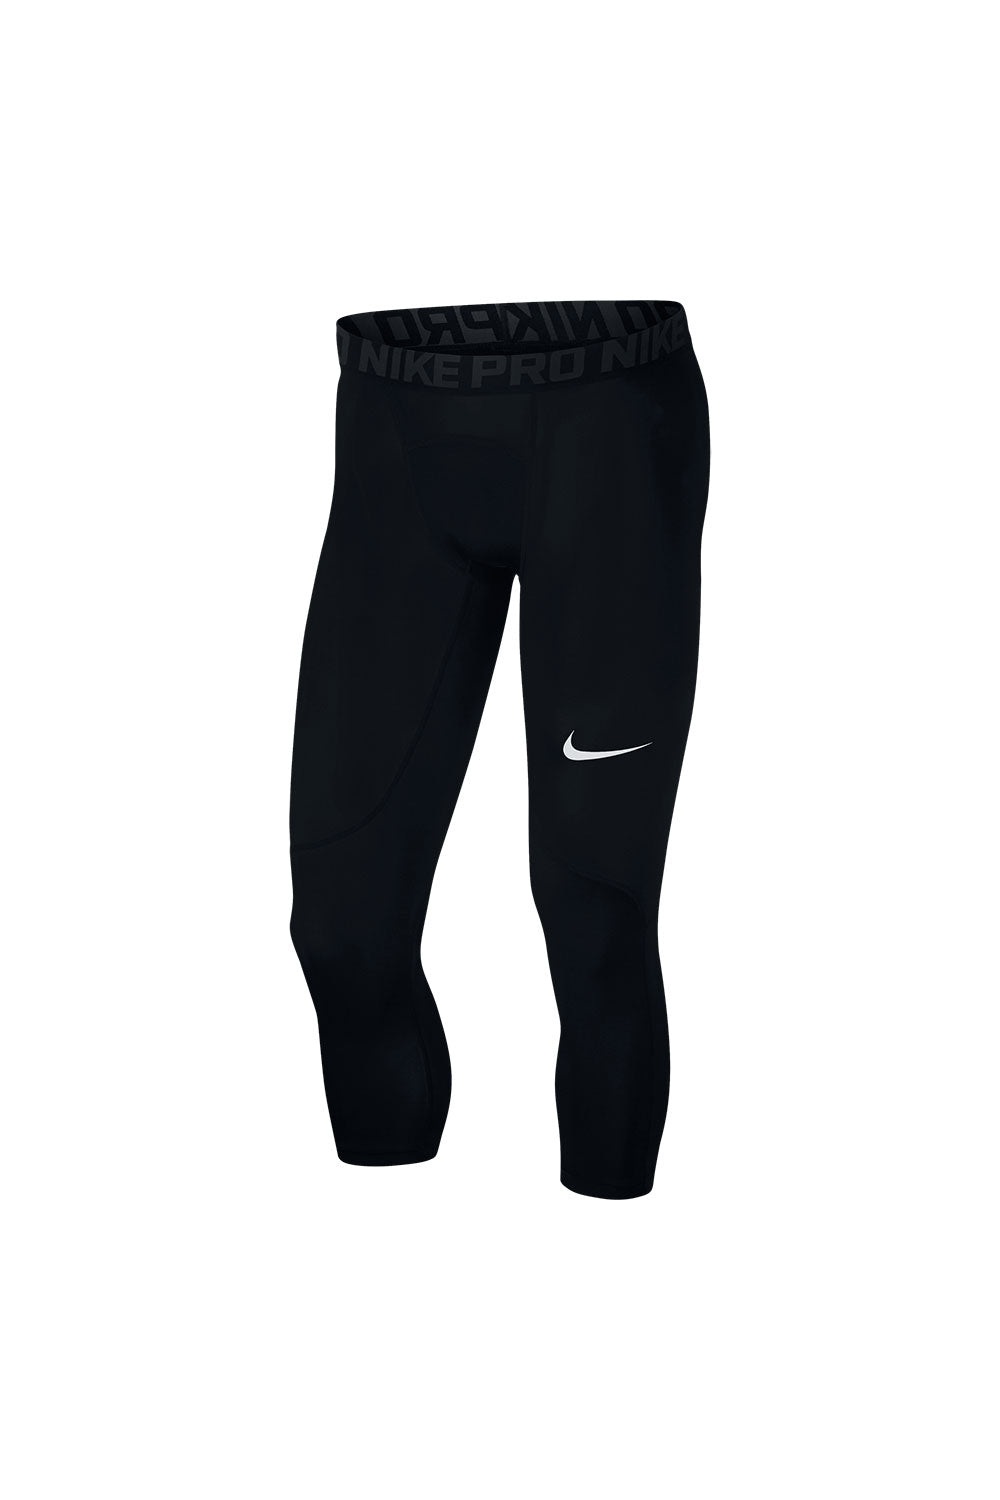 64f7e9bb24811 Men's Pro Tights by Nike at Gazelle Sports